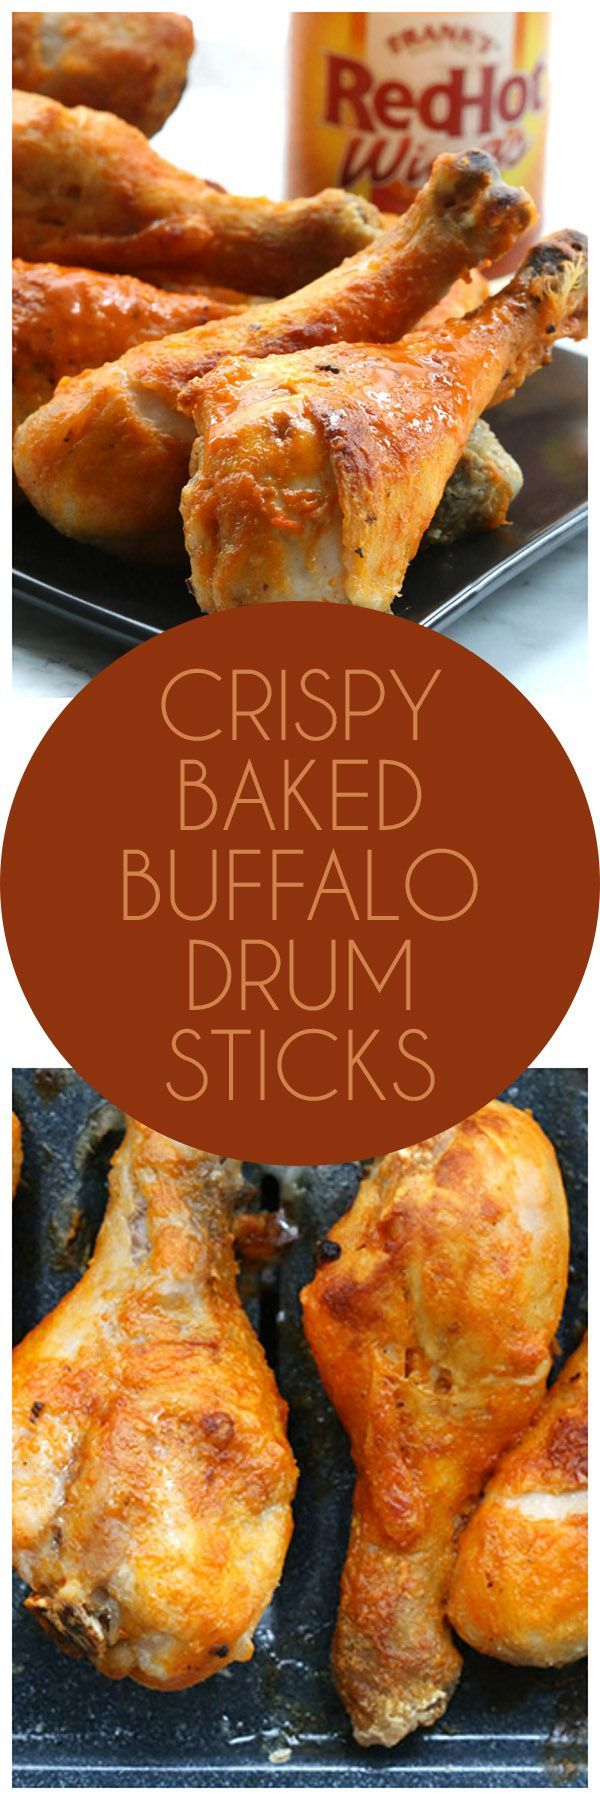 Seriously Crispy Baked Buffalo Chicken Drumsticks So Good And Easy To  Make! Low Carb